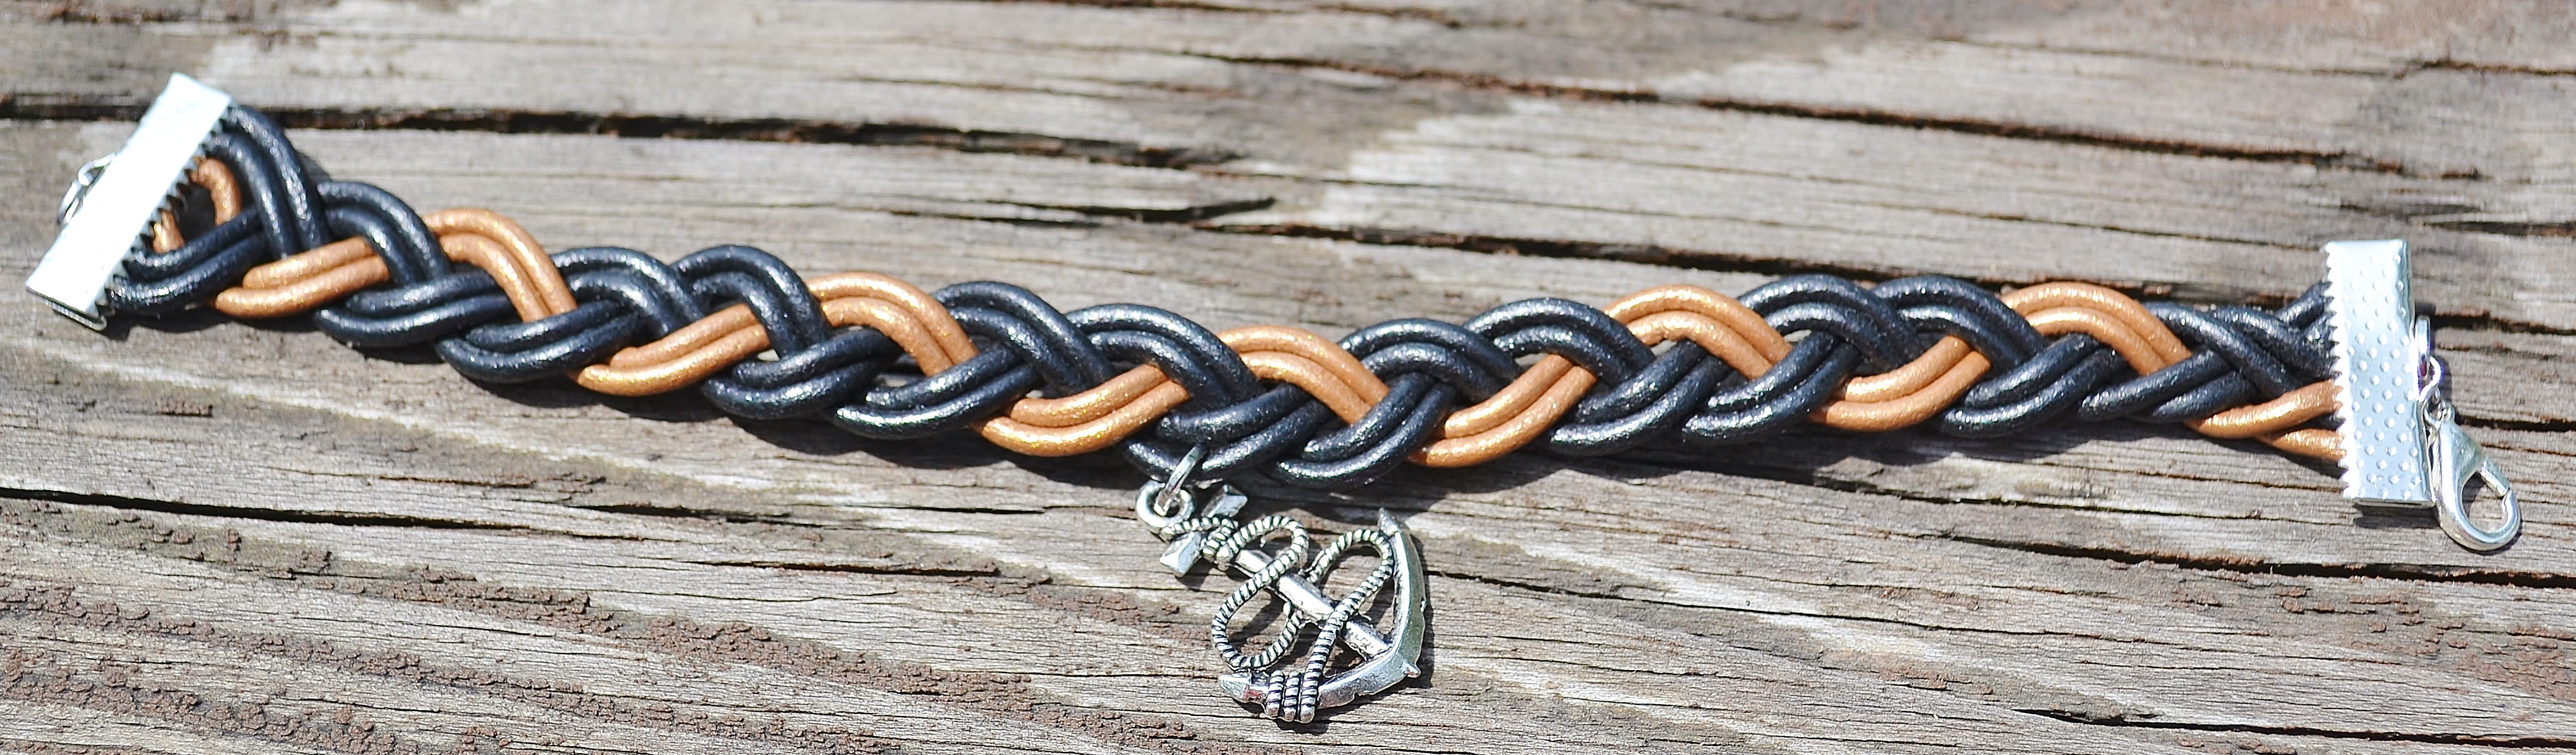 Bryn Braided leather anchor charm bracelet silvertone · Dena